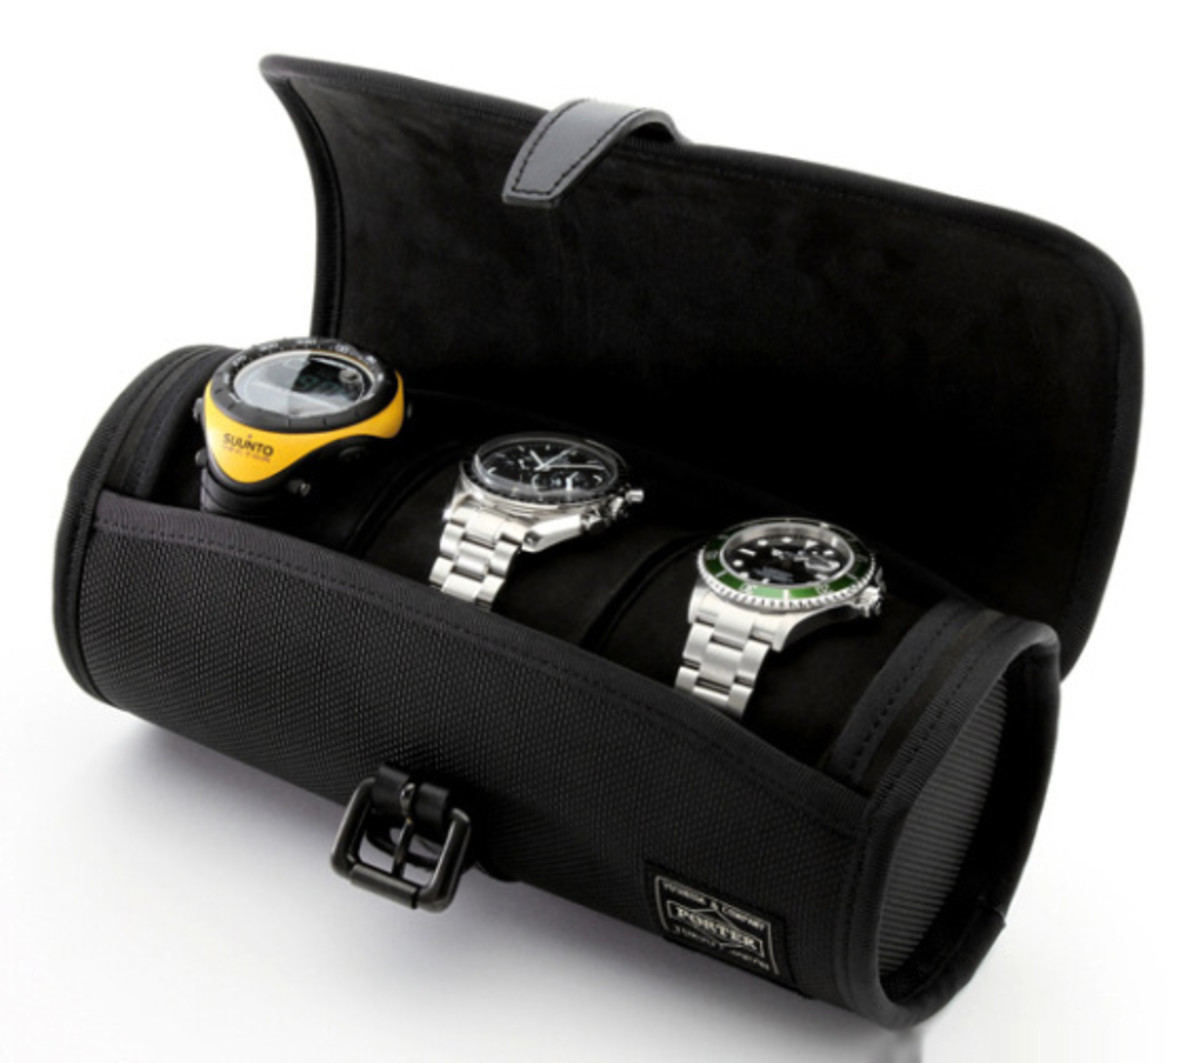 jack-road-porter-watch-carrying-case-01